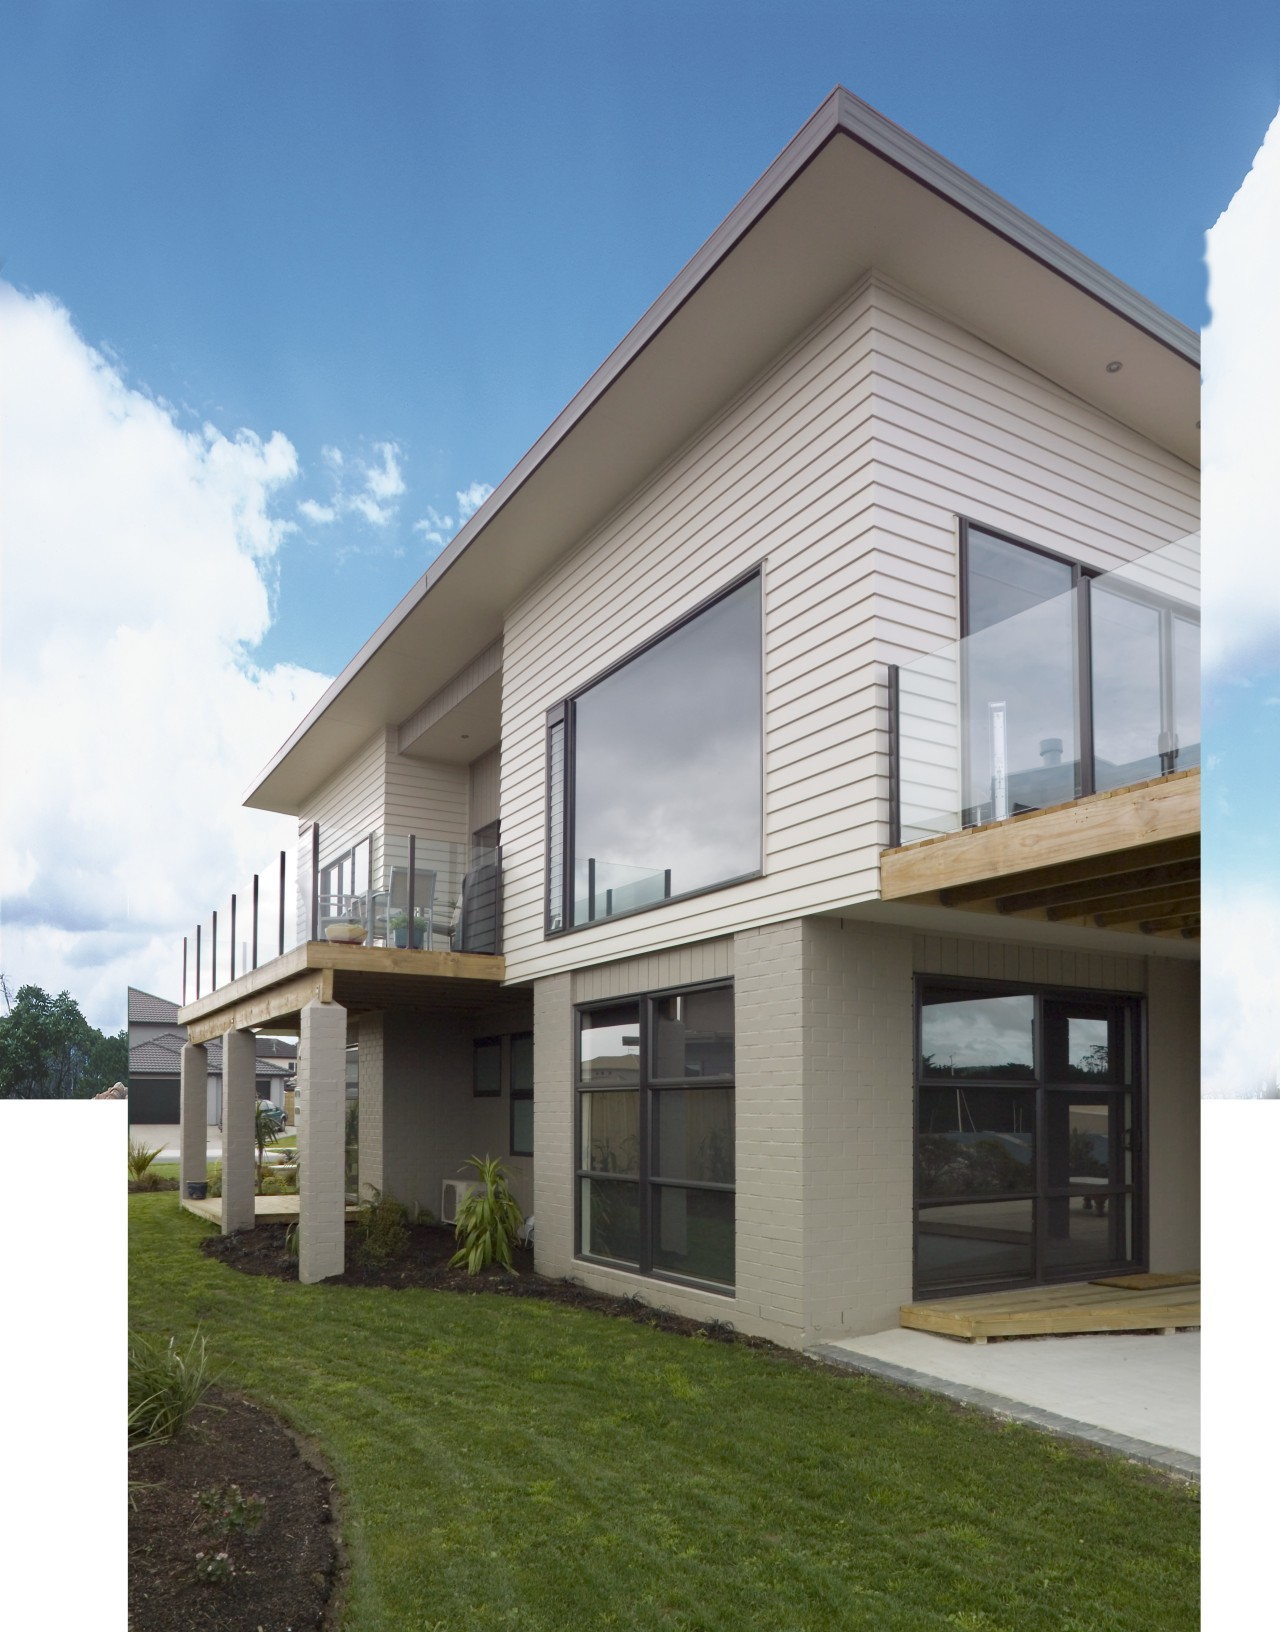 A view of some cladding from Dynex Extrusions. architecture, building, elevation, facade, home, house, property, real estate, residential area, siding, window, white